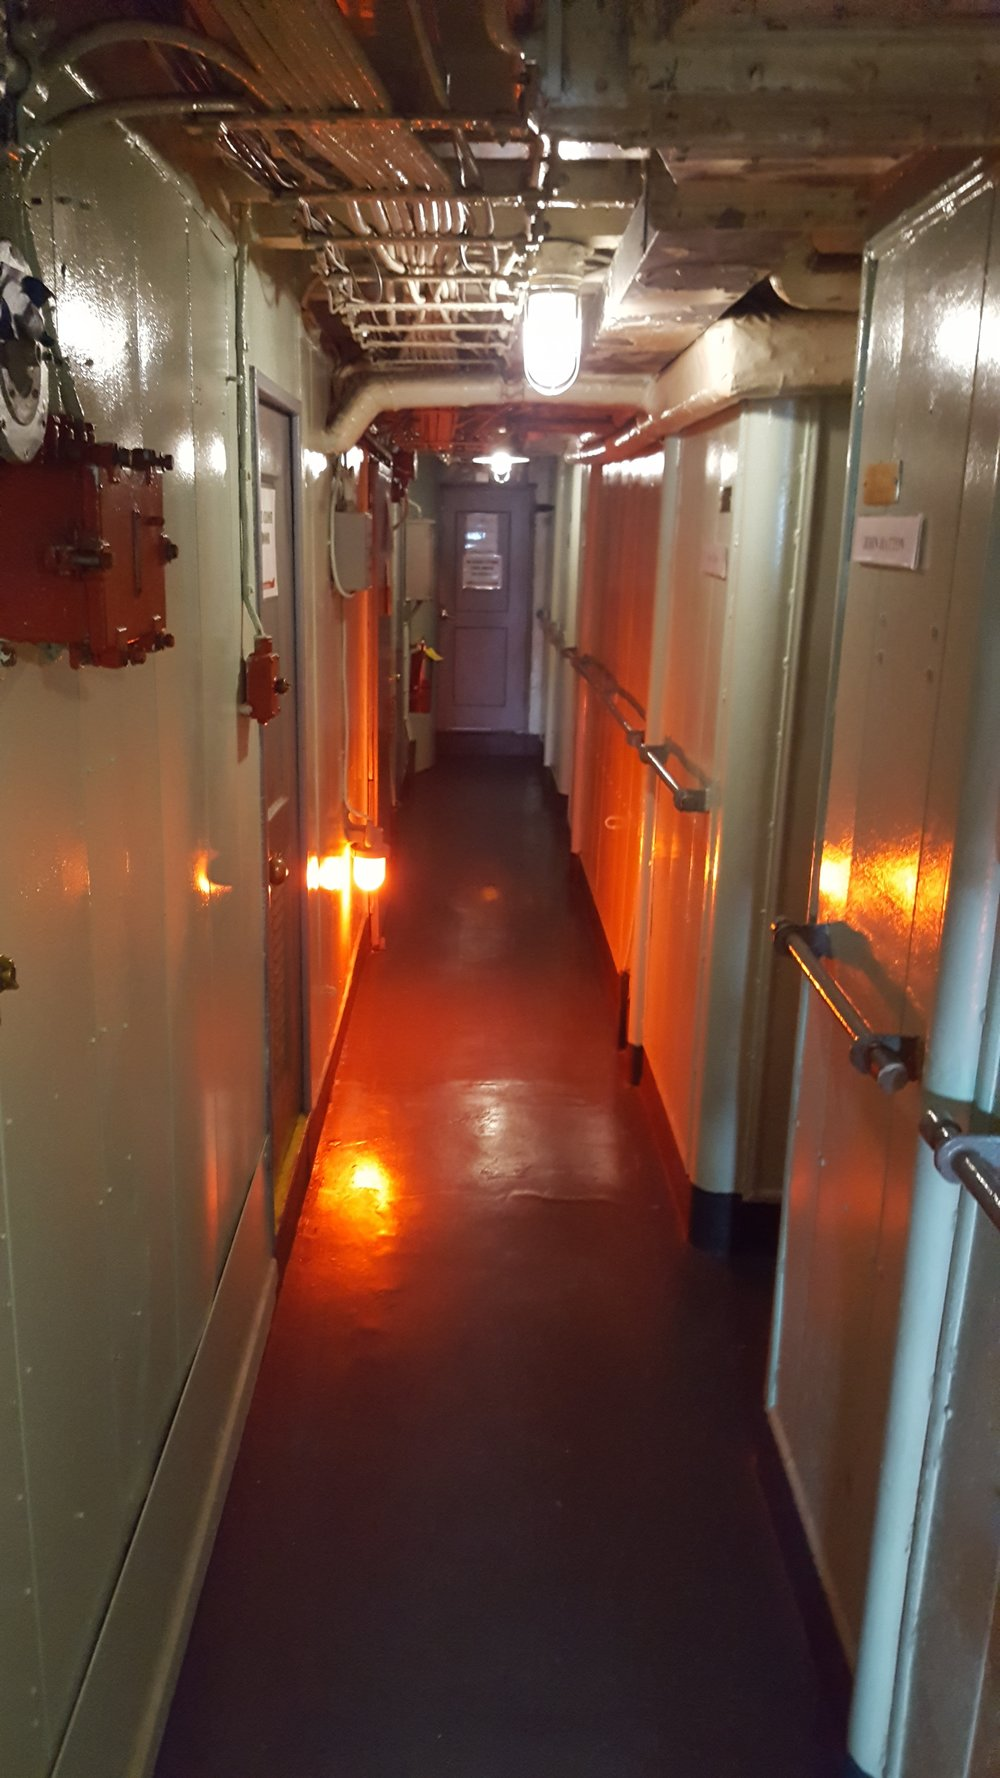 One of the hallways in the officer cabin area. These cabins are located in the superstructure of the ship. Photo source: author.